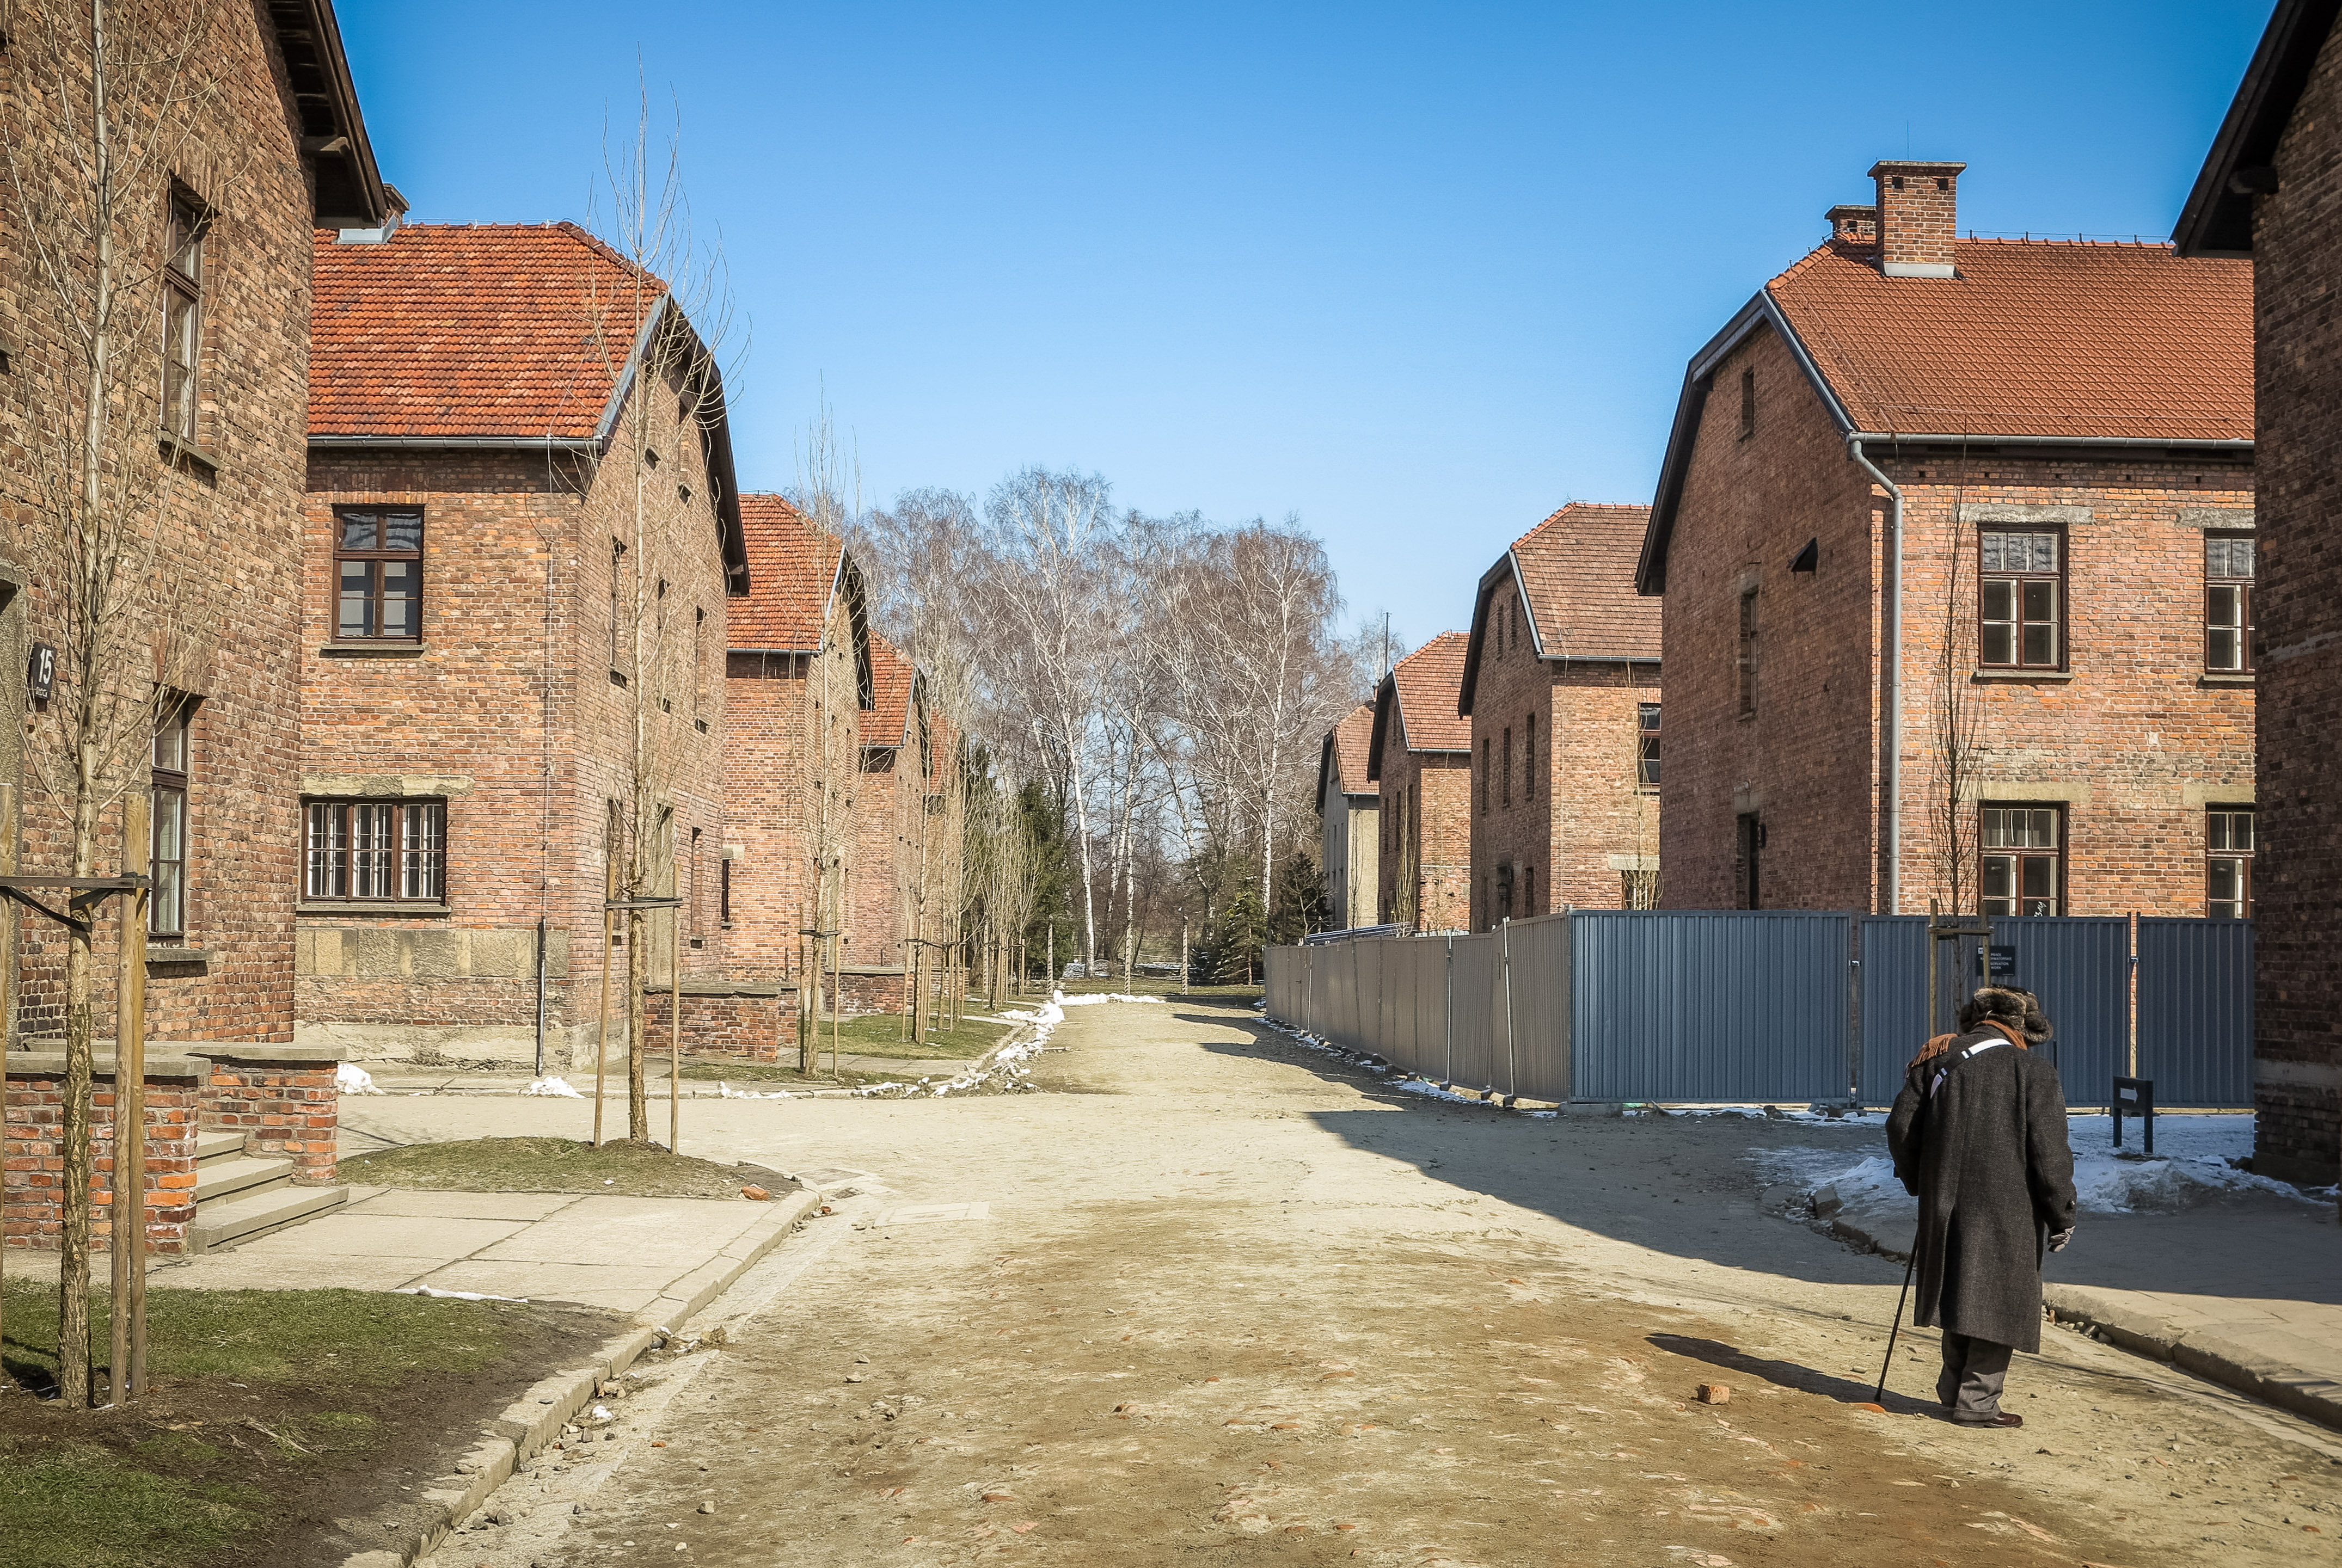 Auschwitz and Birkenau Concentration Camp Photo Essay